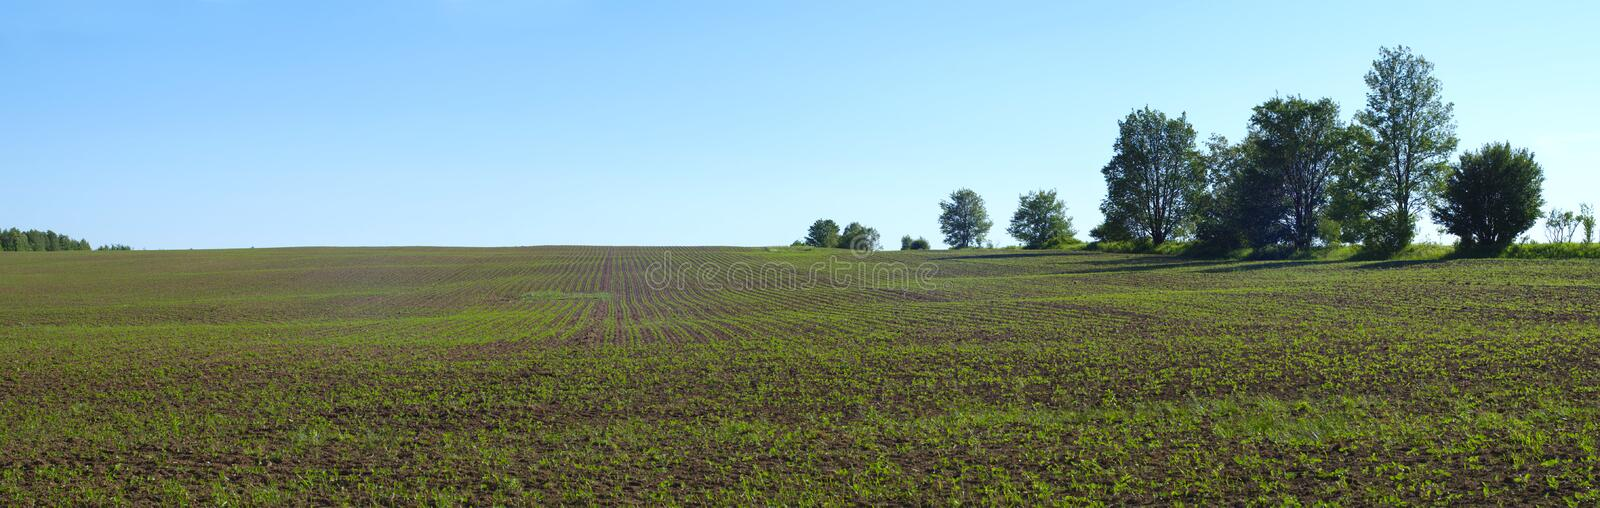 Country spring field organic agriculture panoramic farming land stock photo